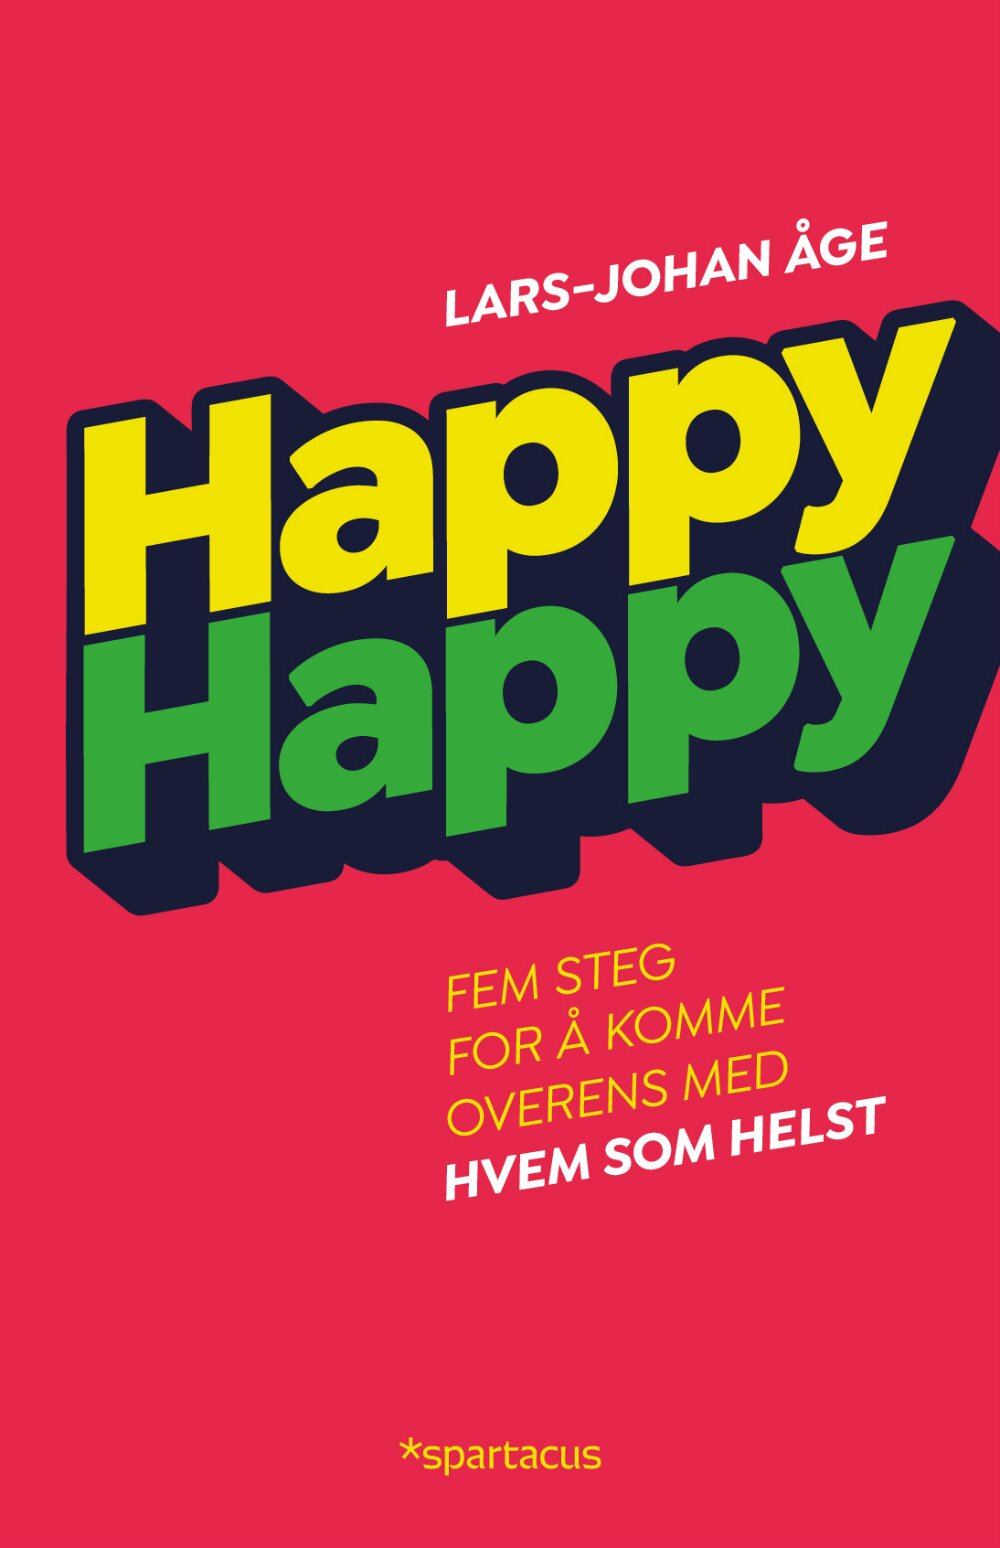 Vår happy happy